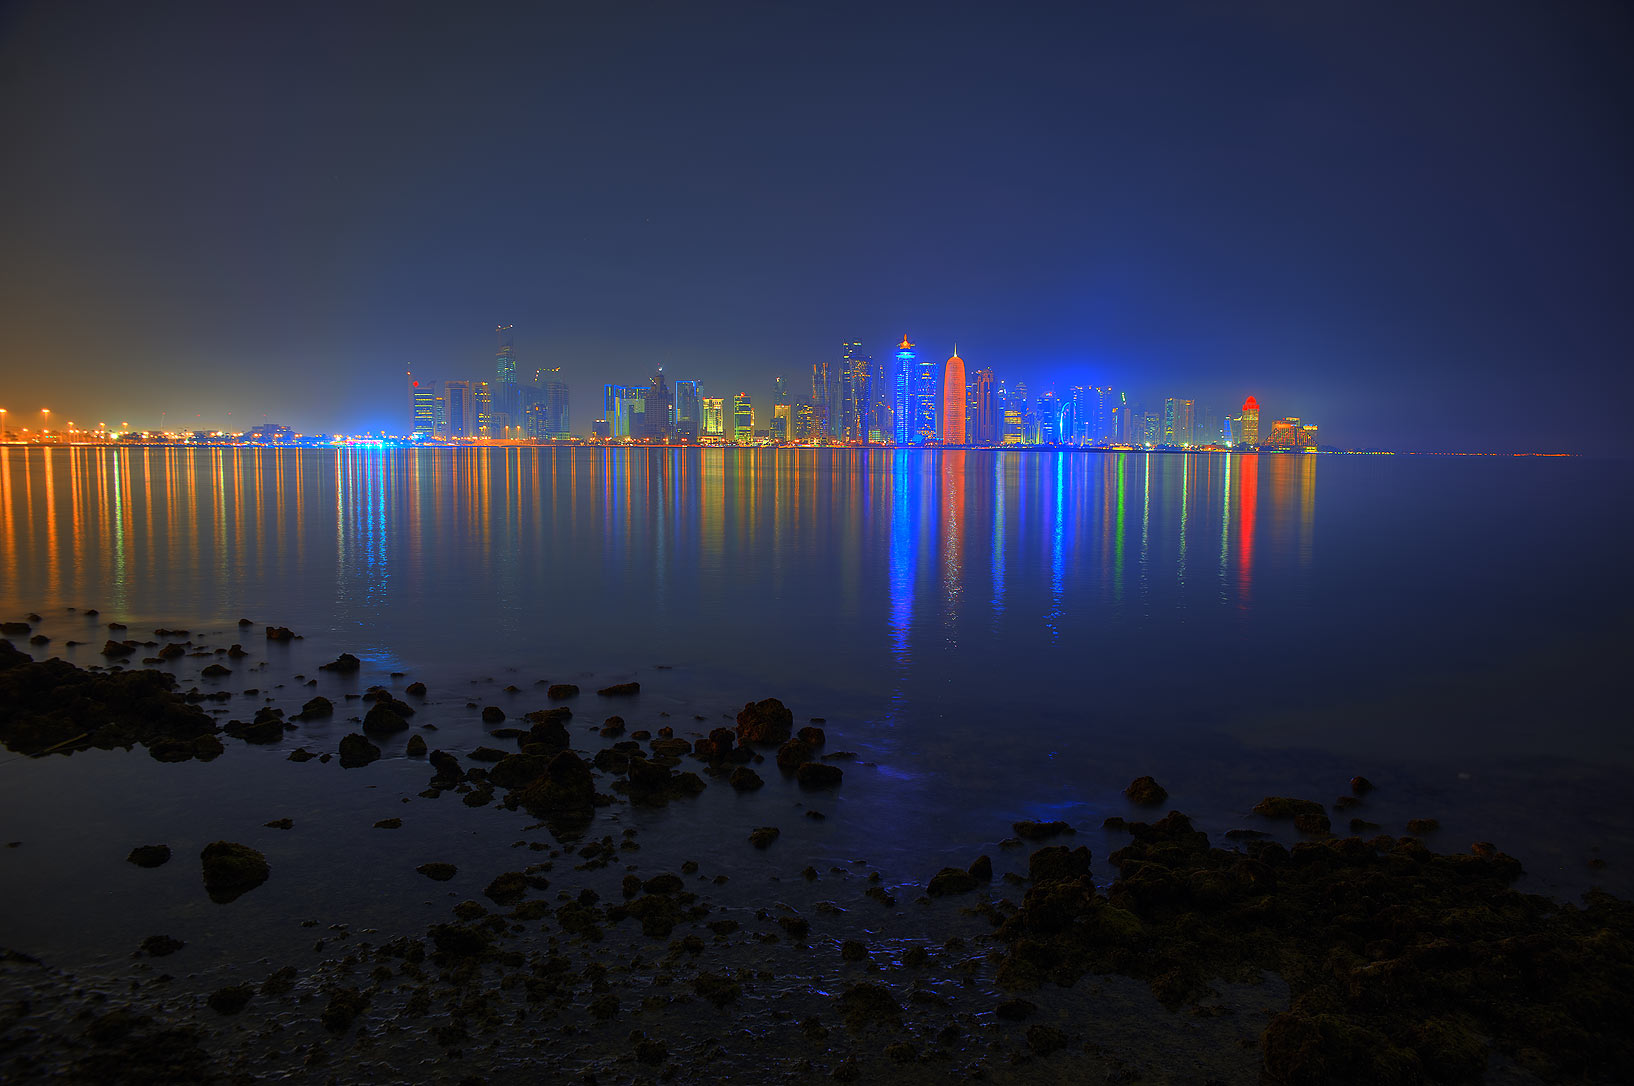 City lights from Corniche promenade at evening. Doha, Qatar